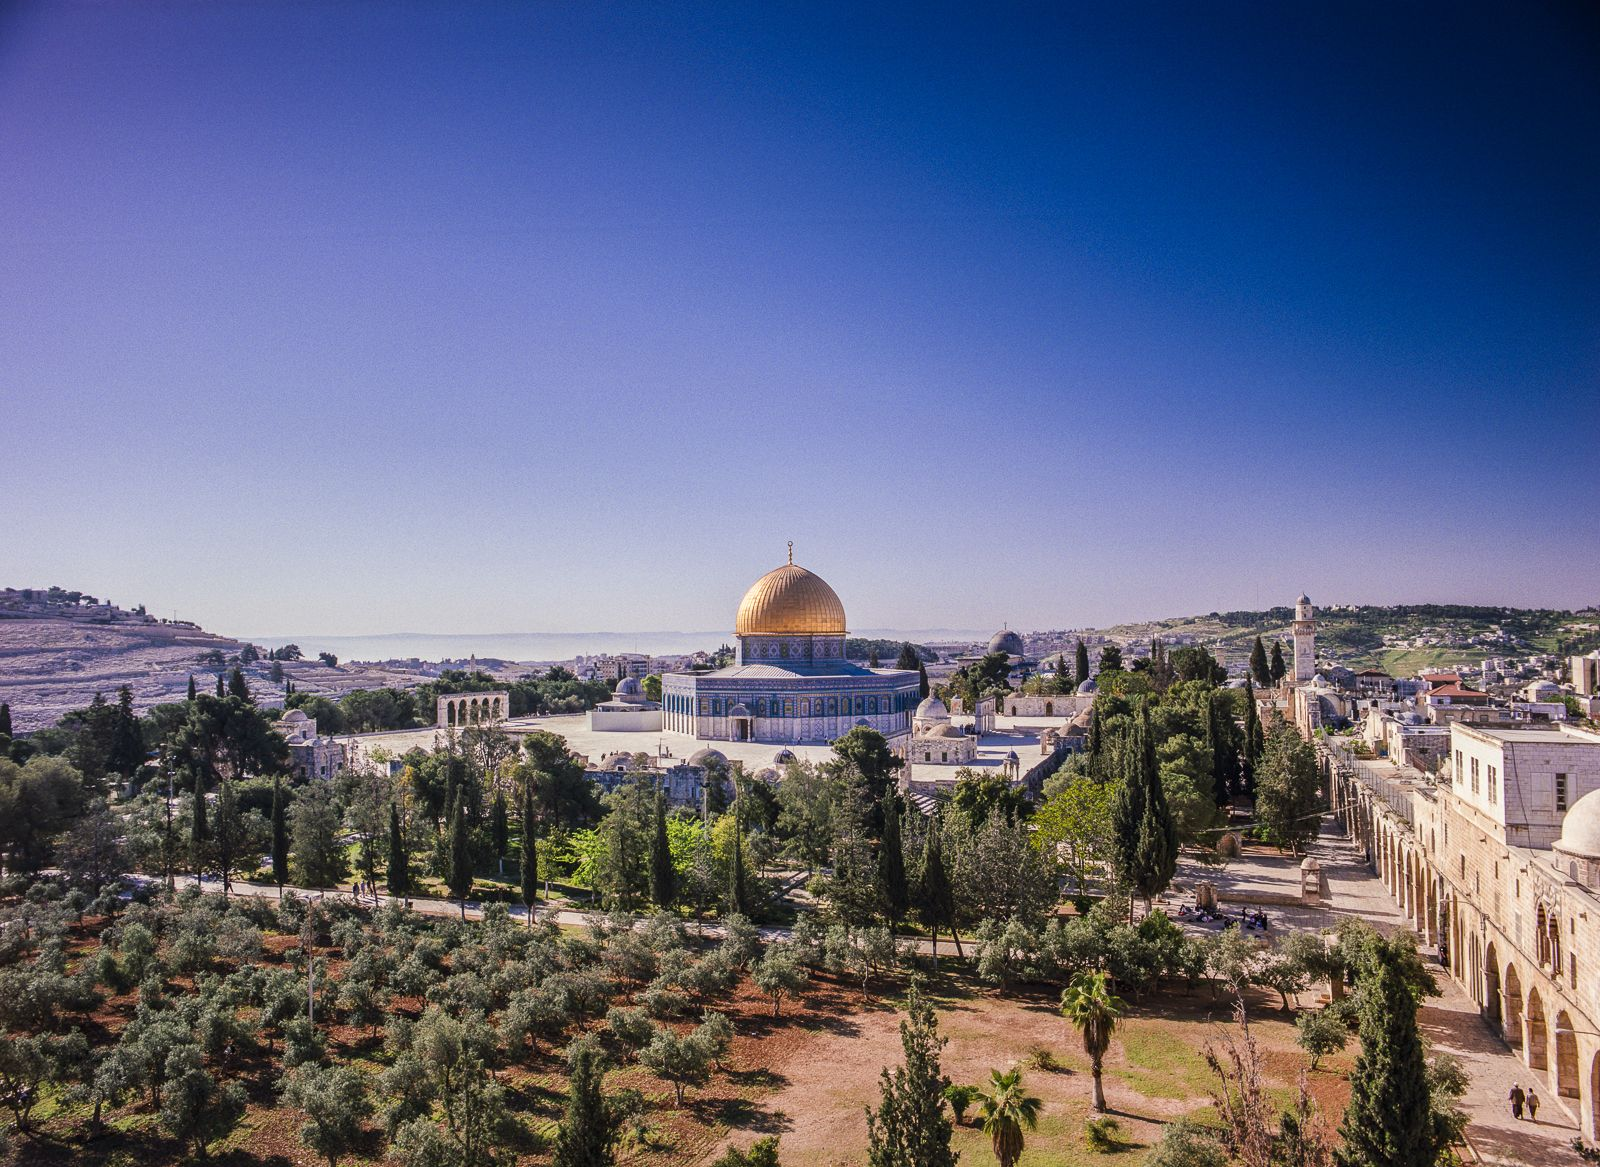 Jerusalem 3-D - National Geographic Museum 2018-01-17 17:45